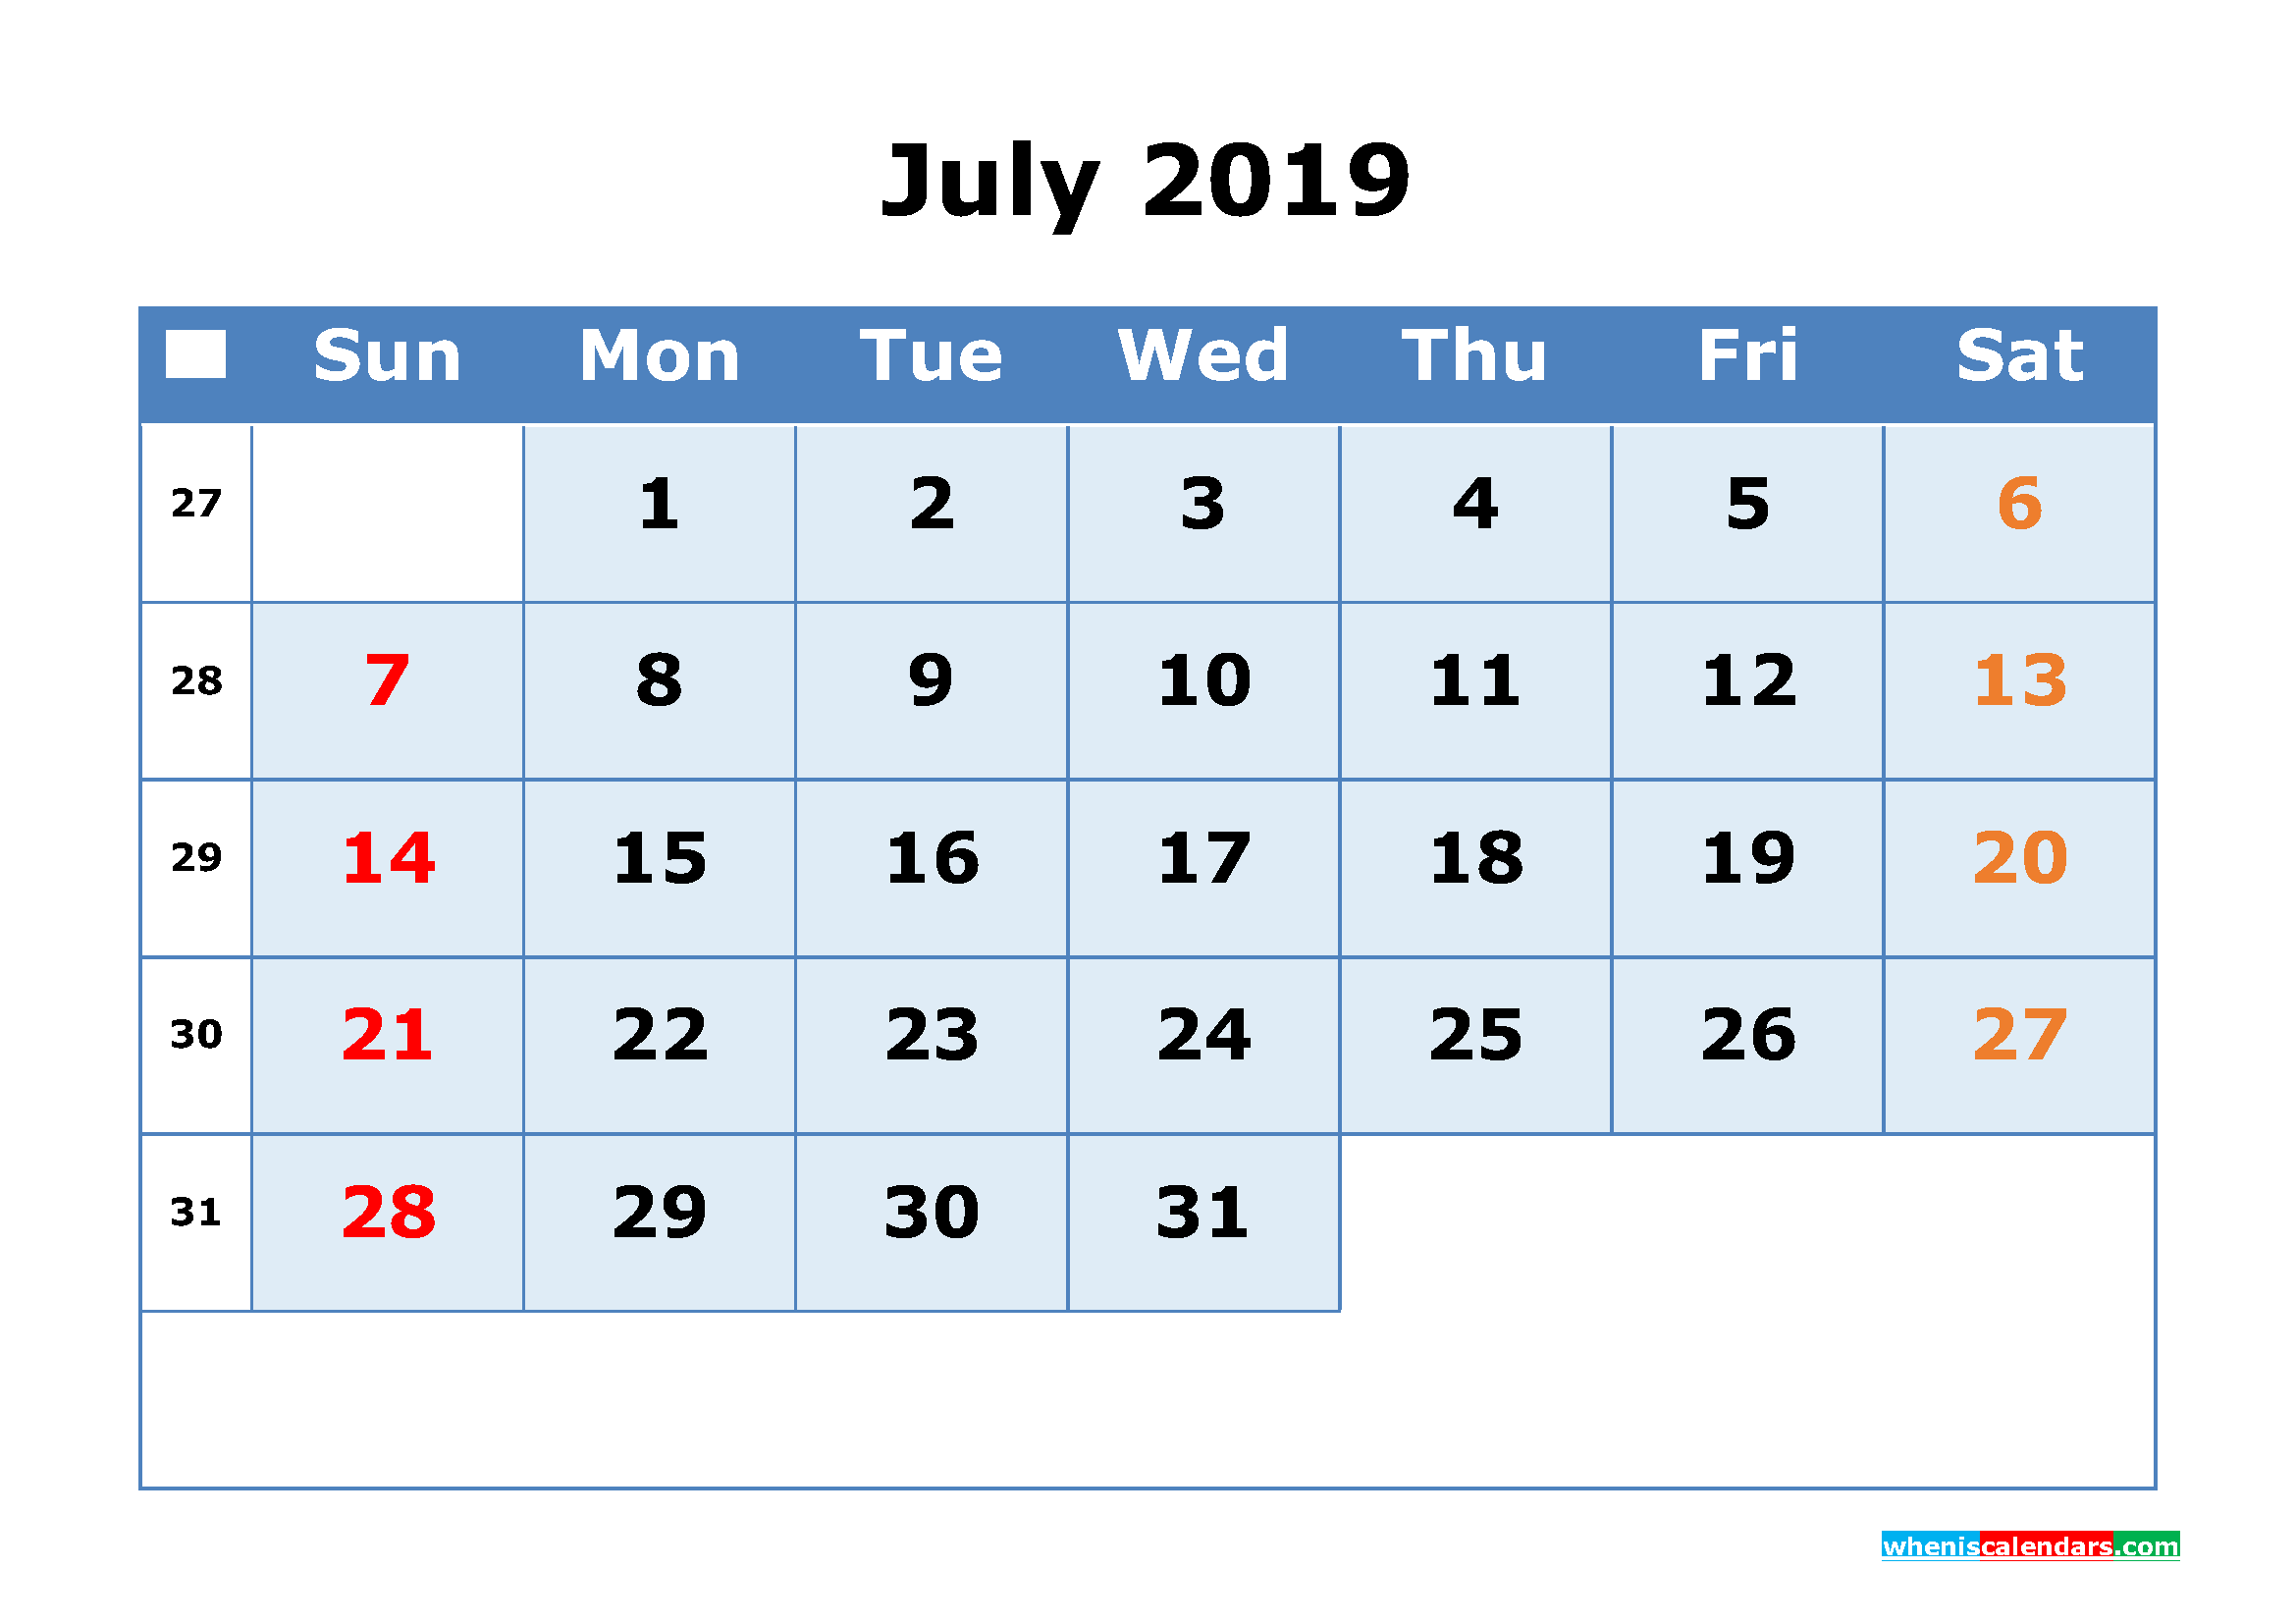 July 2019 Printable Calendar with Week Numbers as PDF, JPG